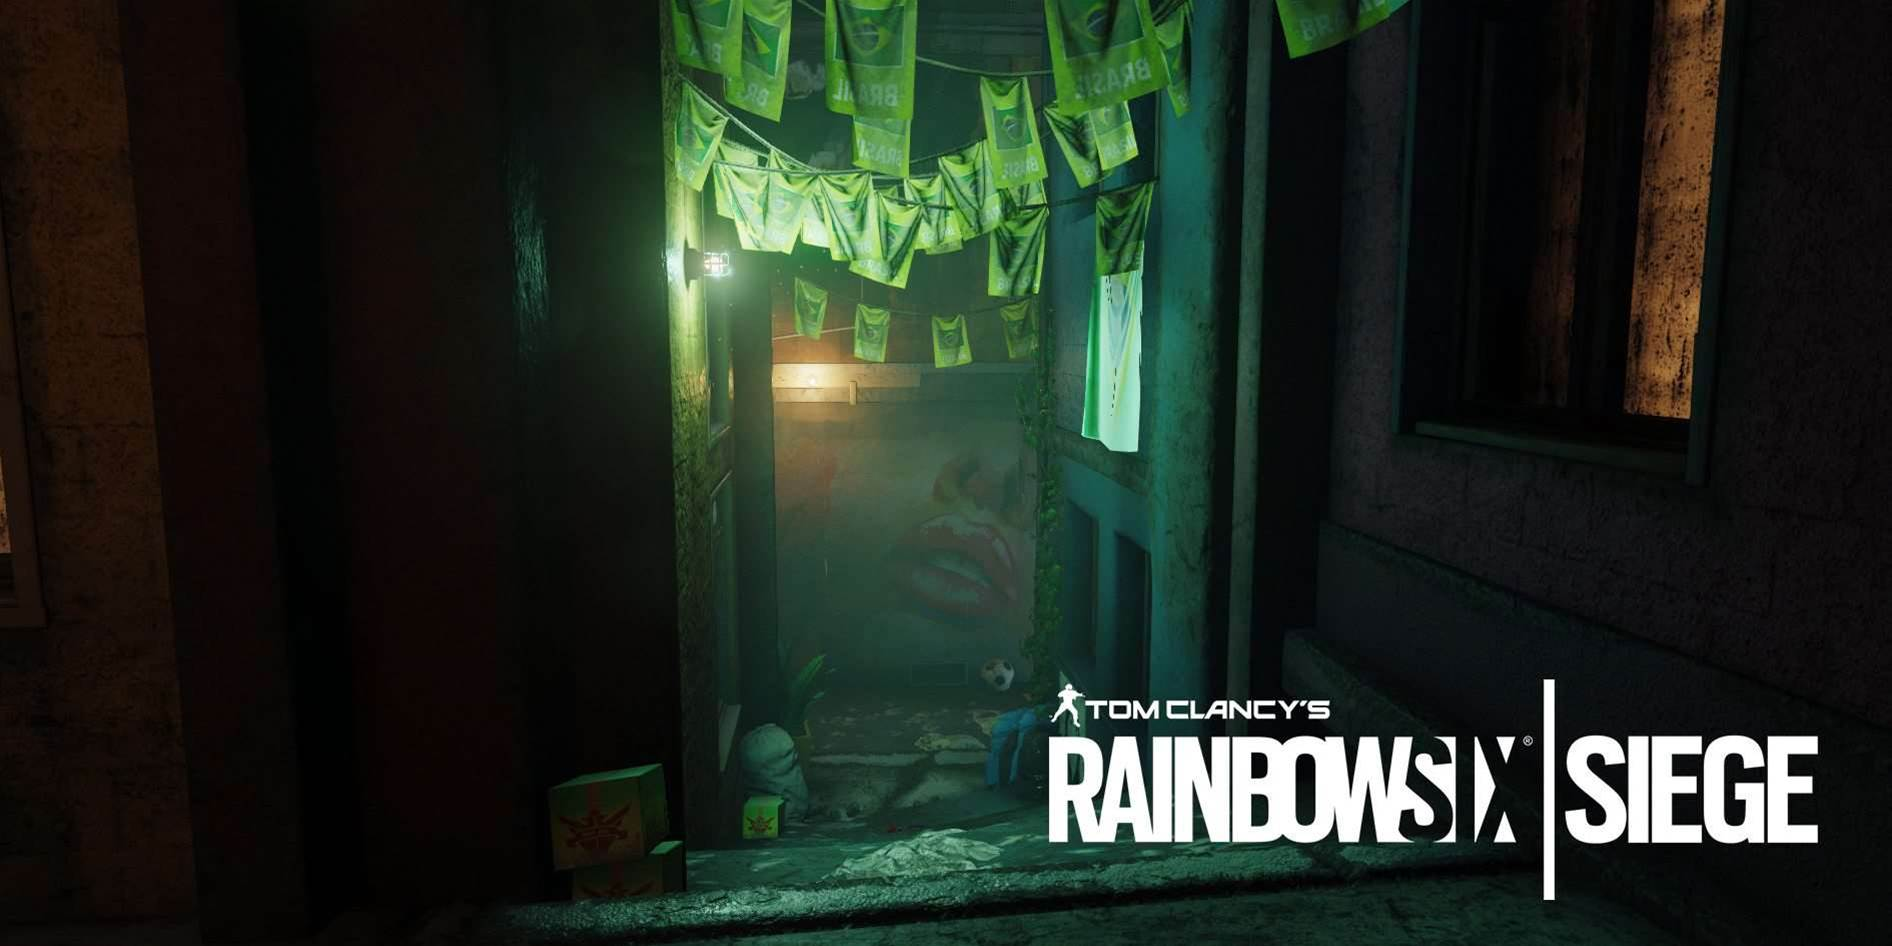 A handful of Rainbow Six Siege shots